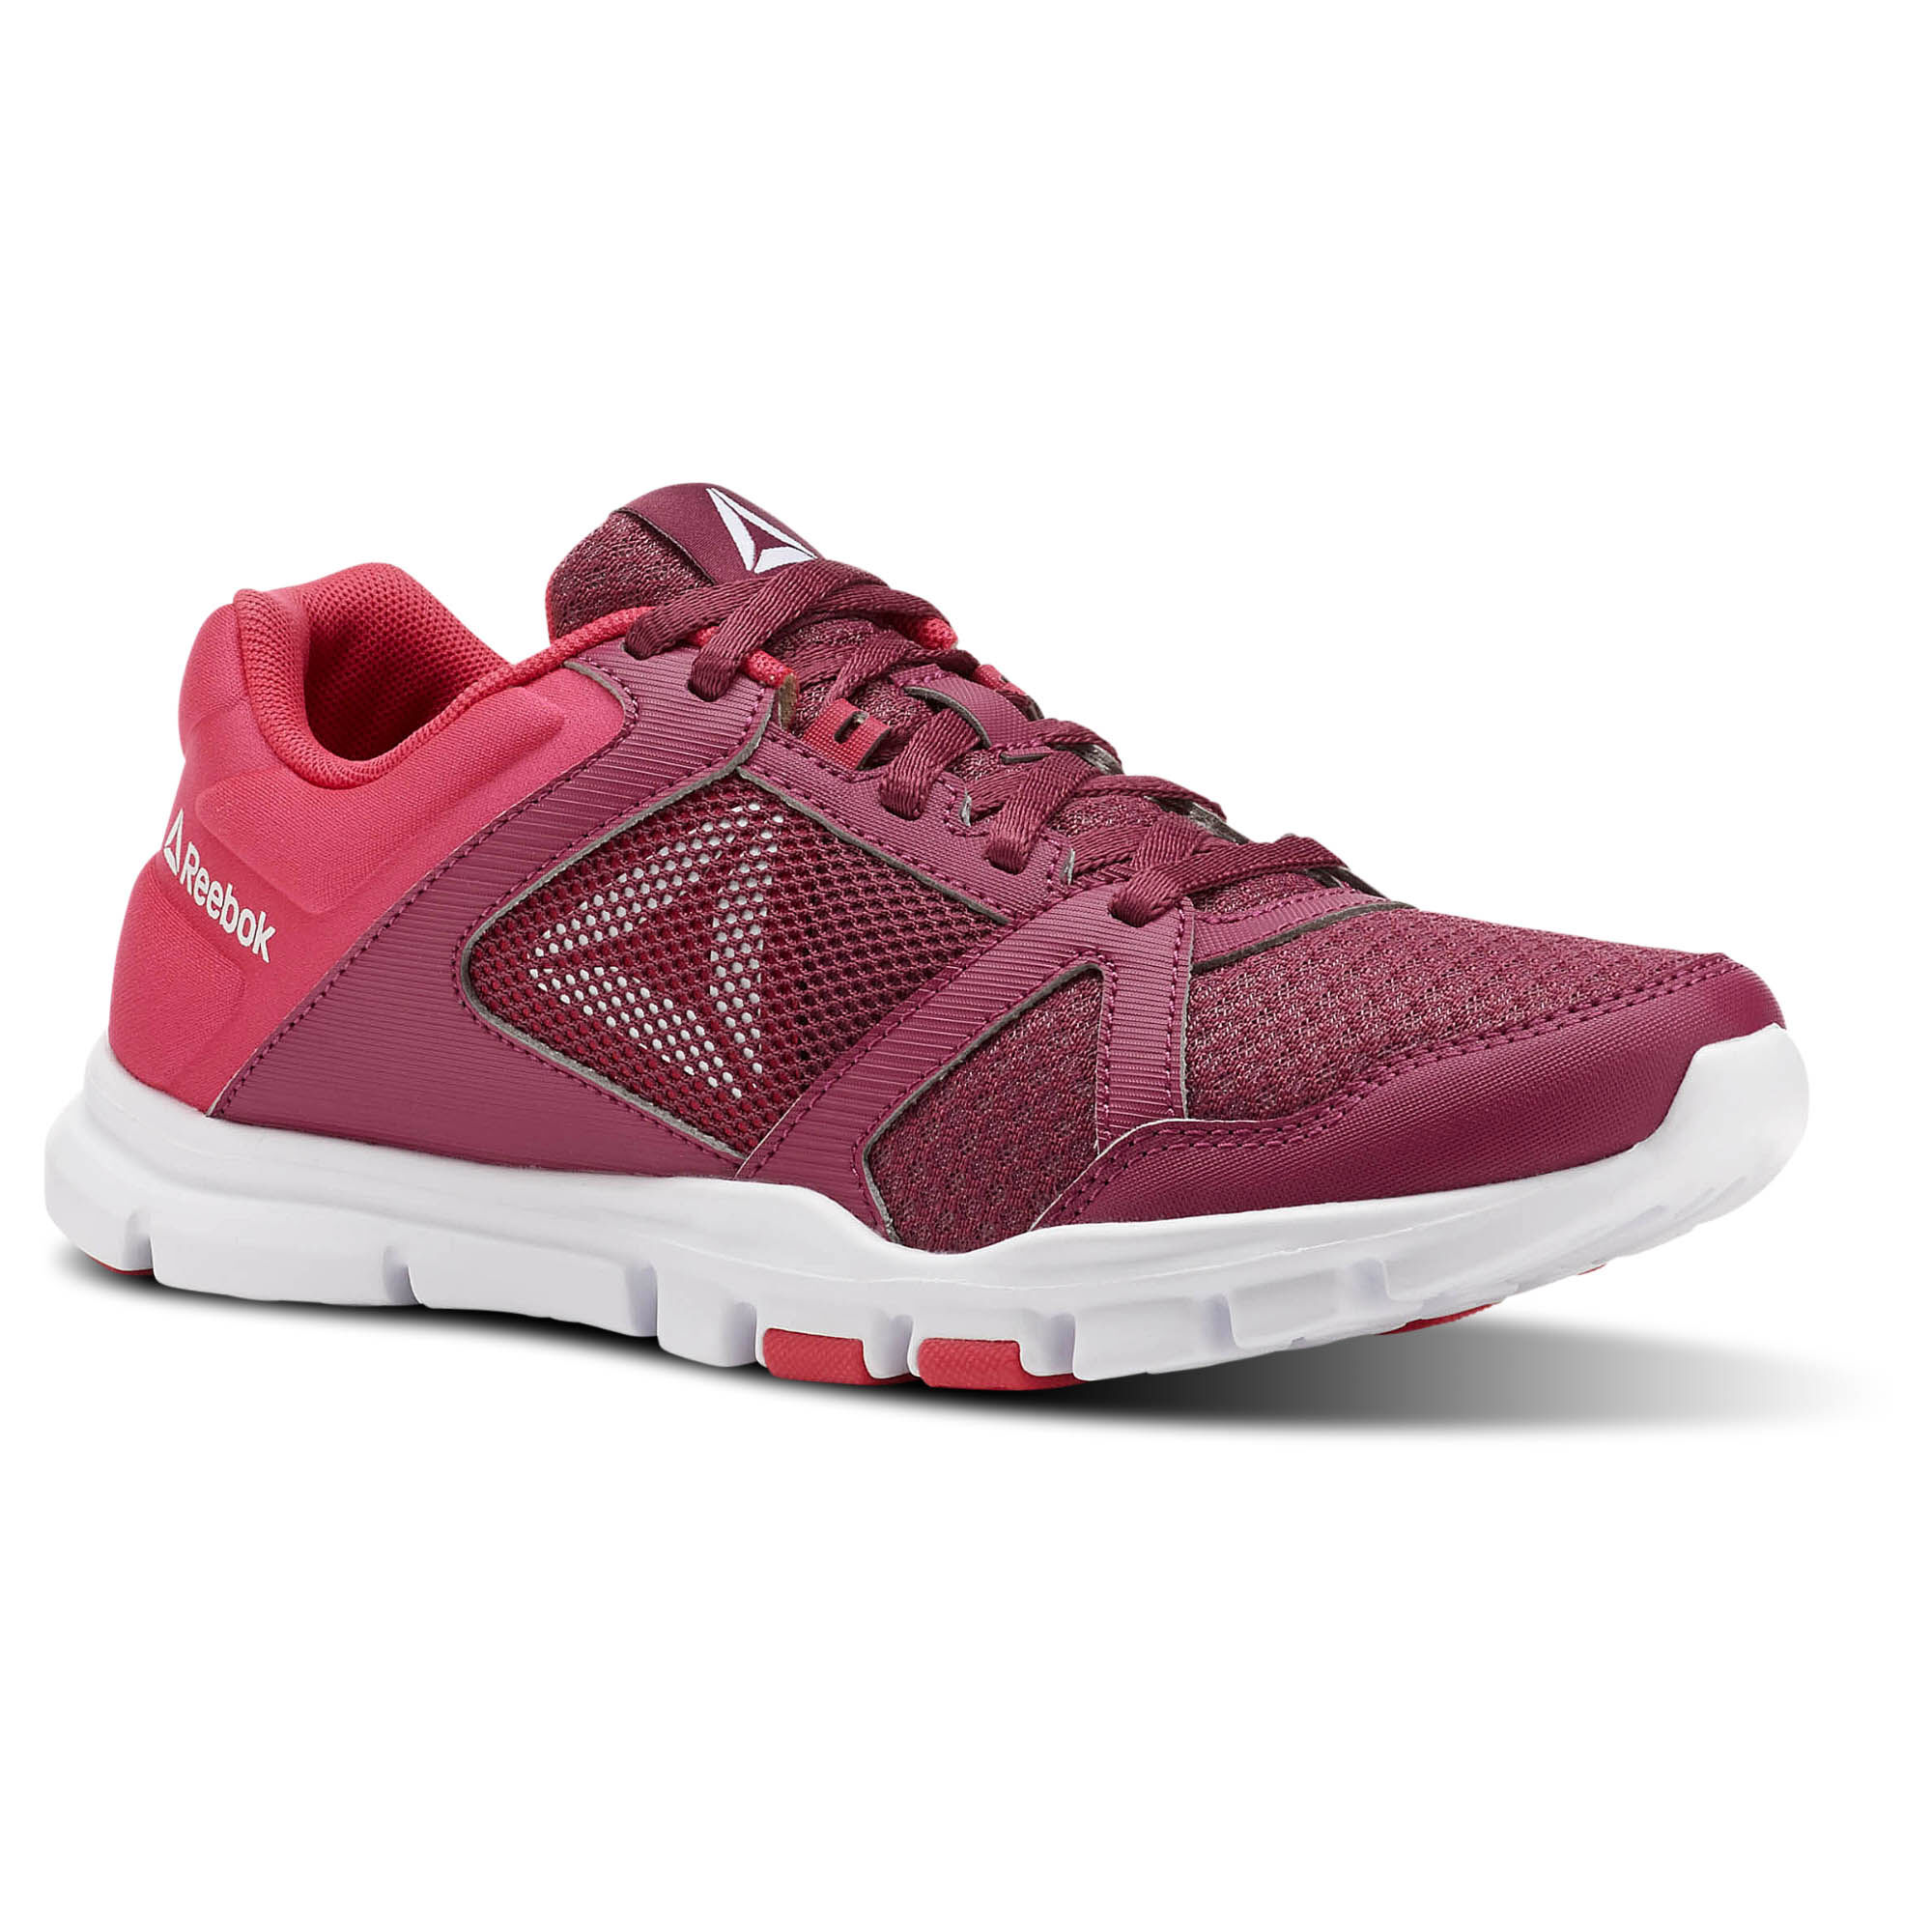 Reebok YOURFLEX TRAINETTE 10 MT - Sports shoes - Twisted Berry/Twisted Pink